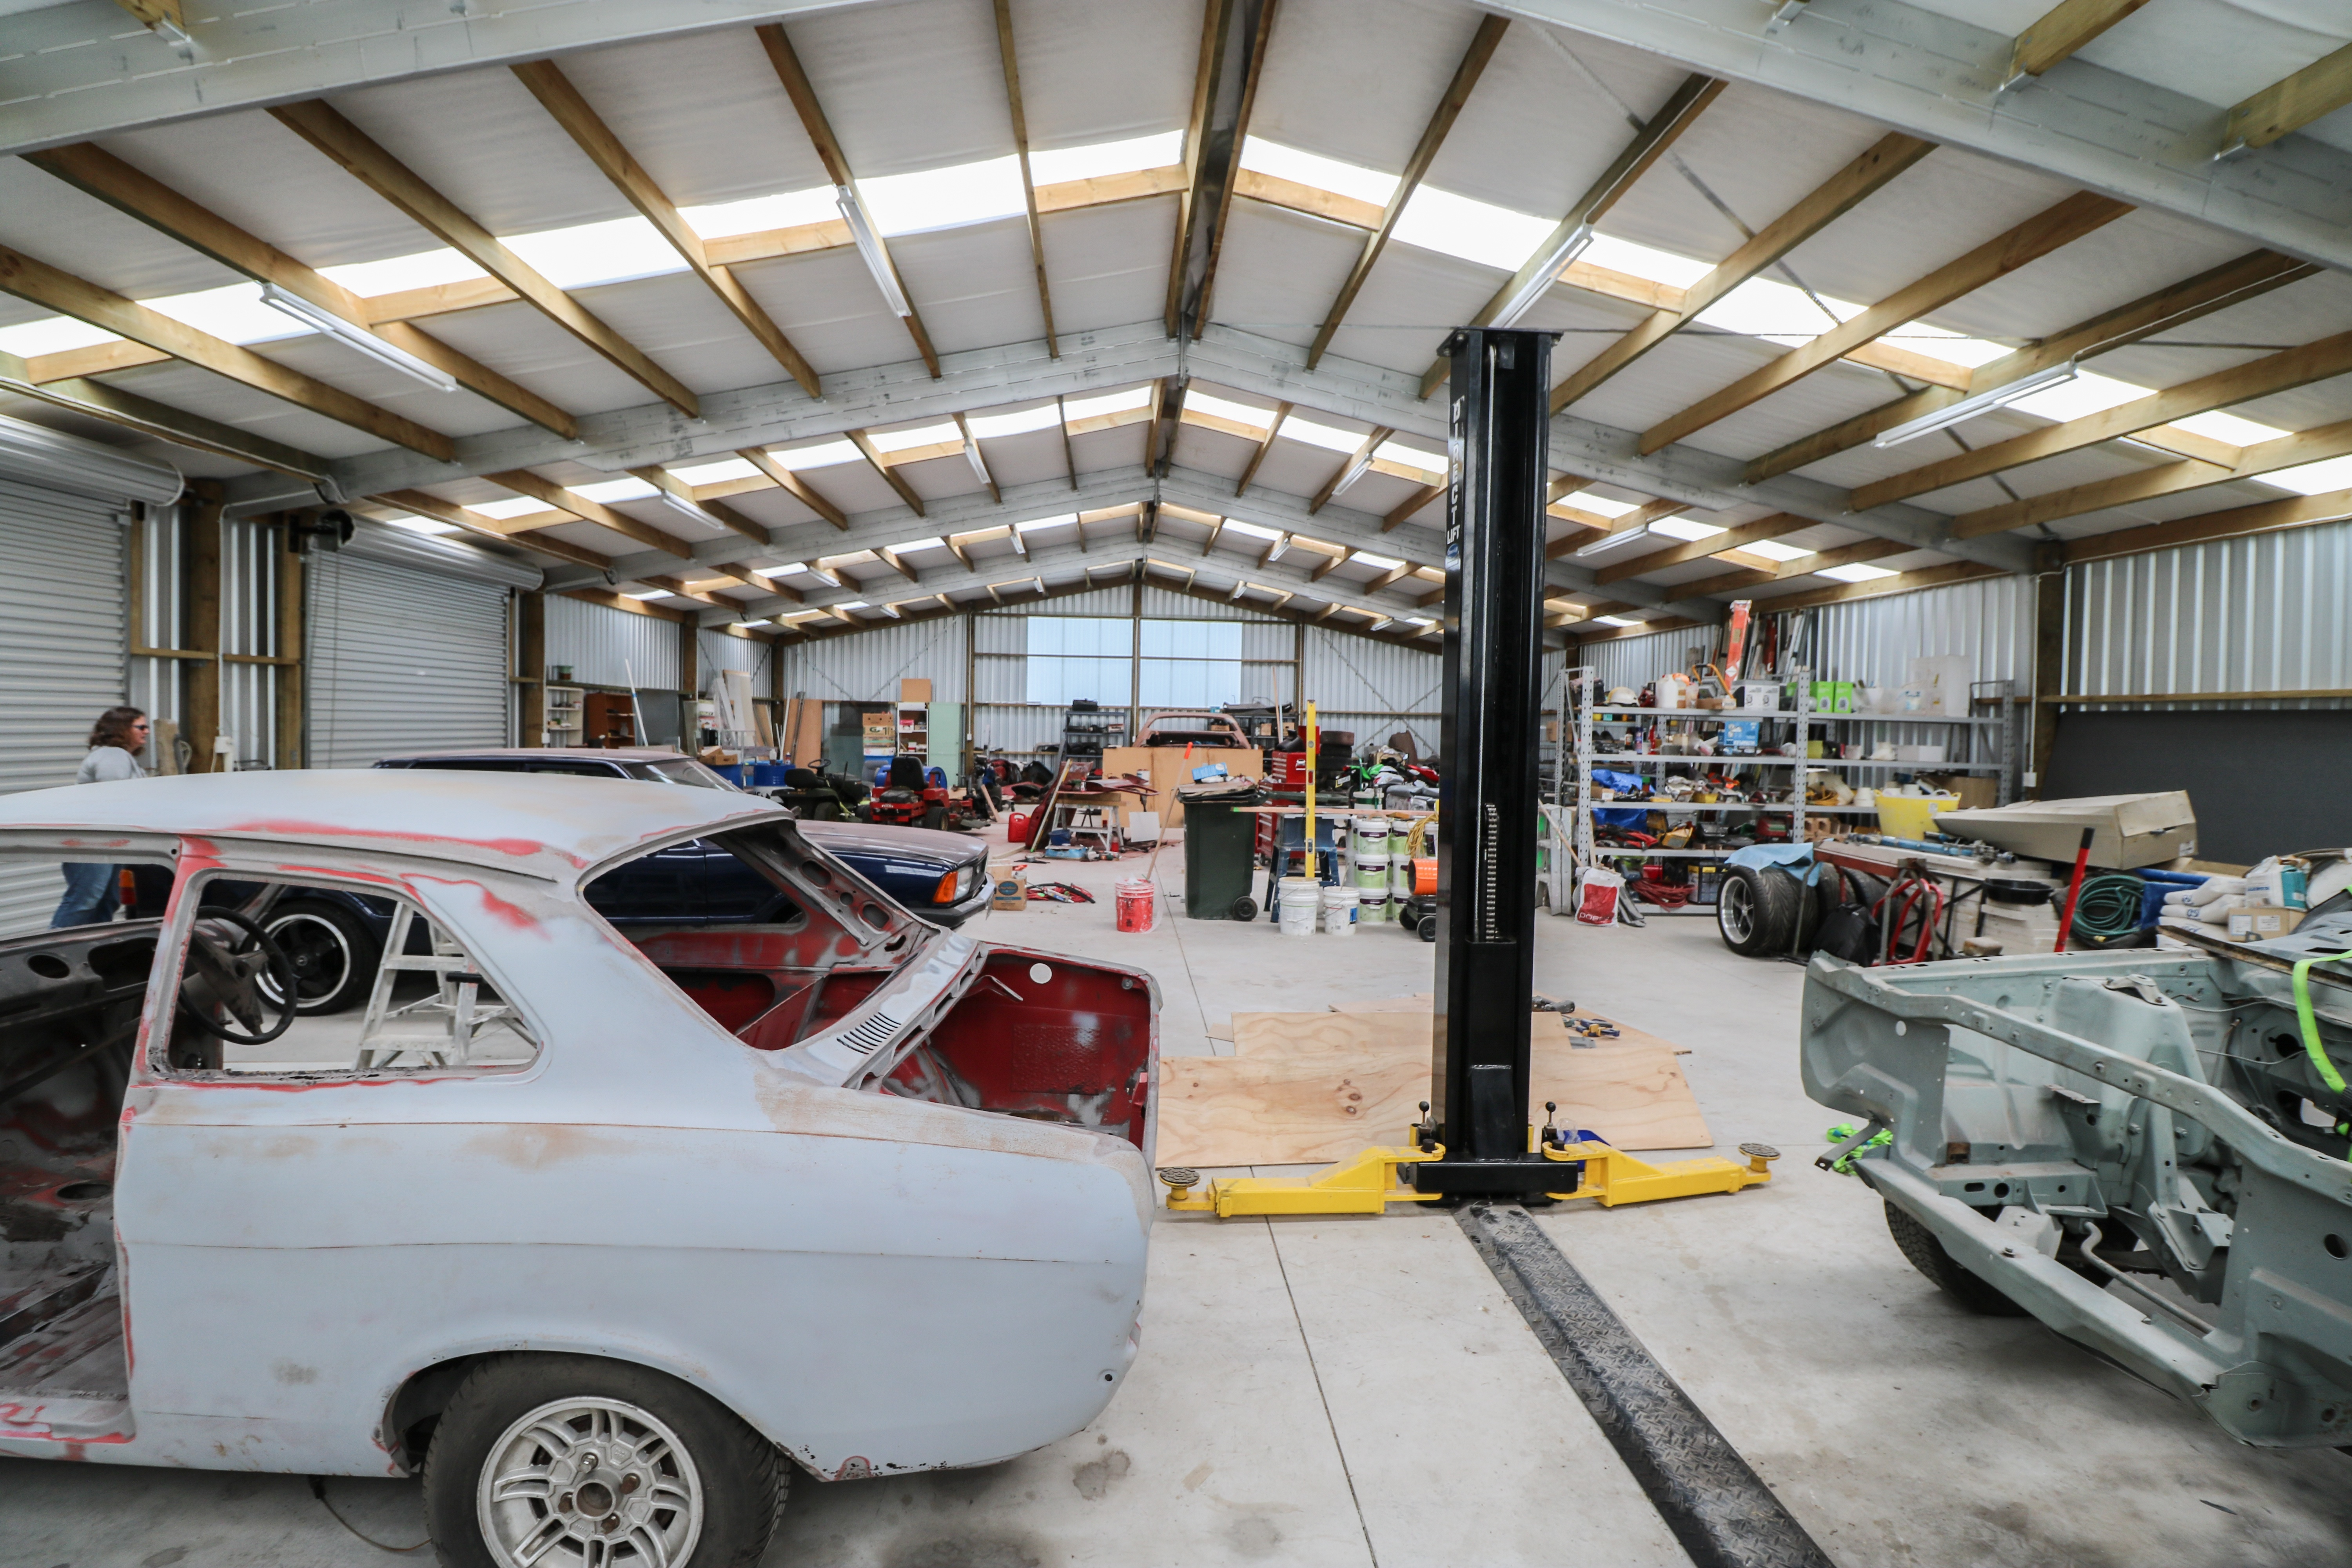 Get inspired by this kiwi man cave